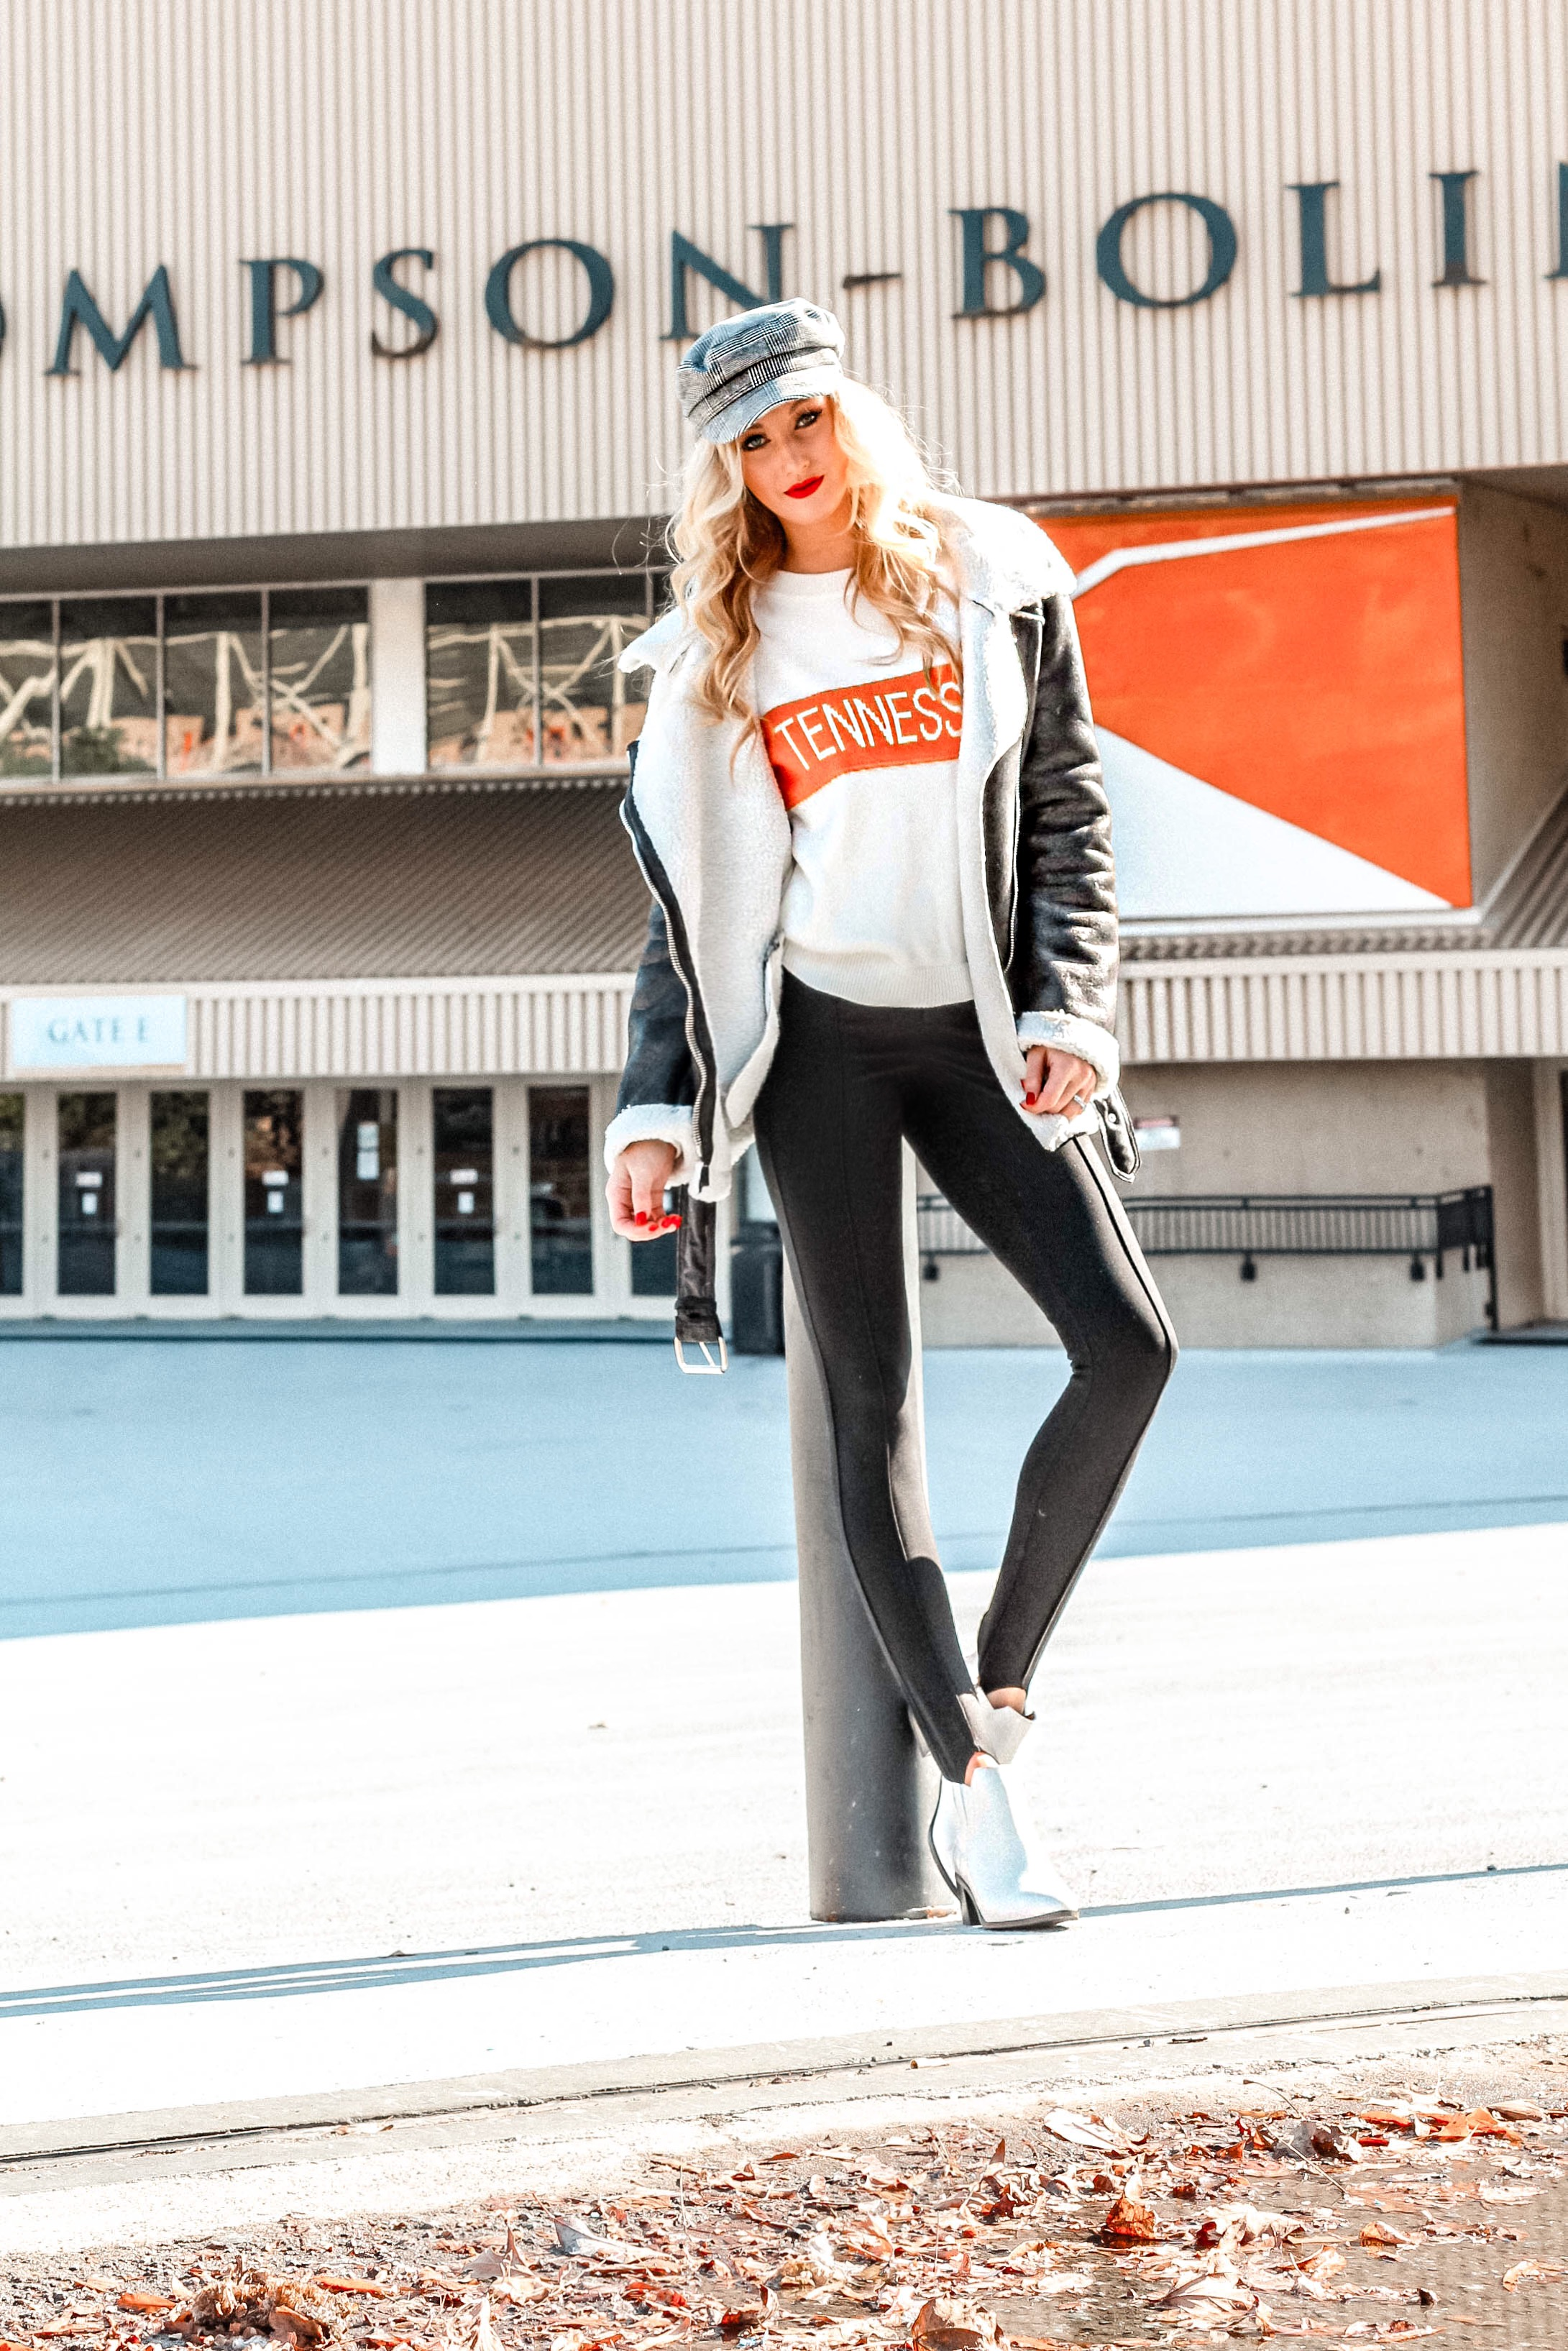 How to Look Stylish (& Stay Warm) During Basketball Season | love 'n' labels www.lovenlabels.com